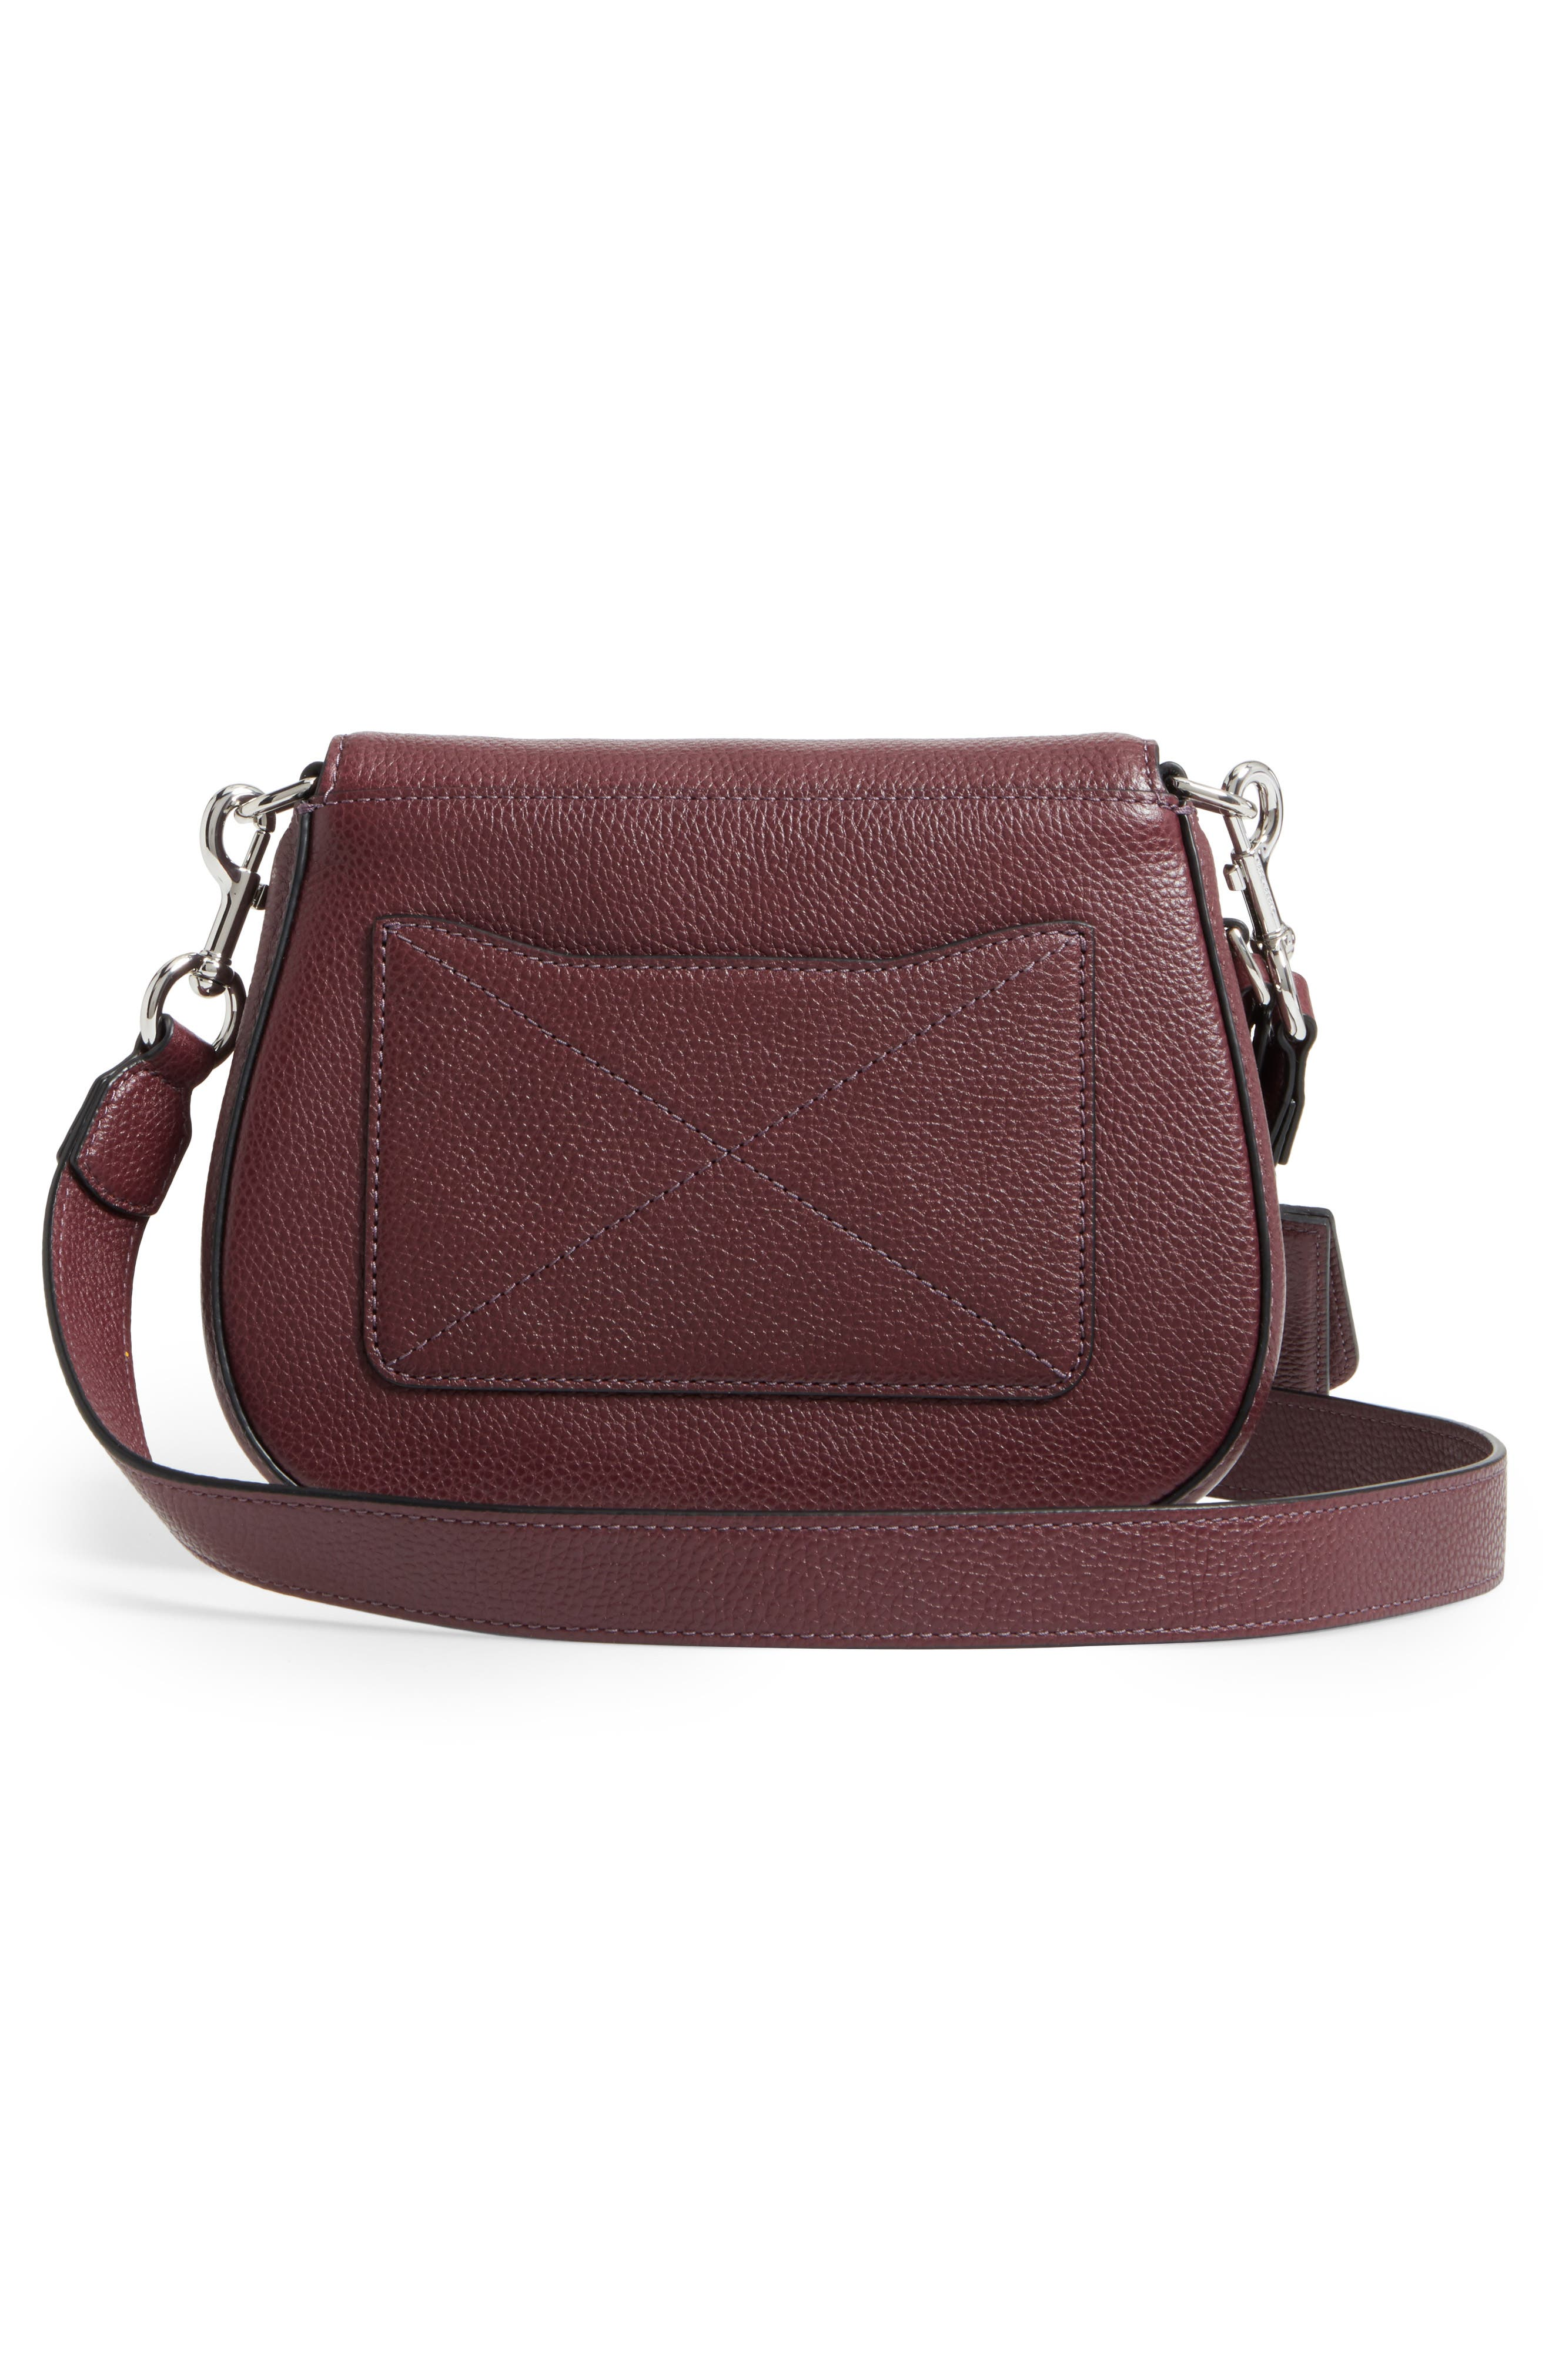 Small Recruit Nomad Pebbled Leather Crossbody Bag,                             Alternate thumbnail 30, color,